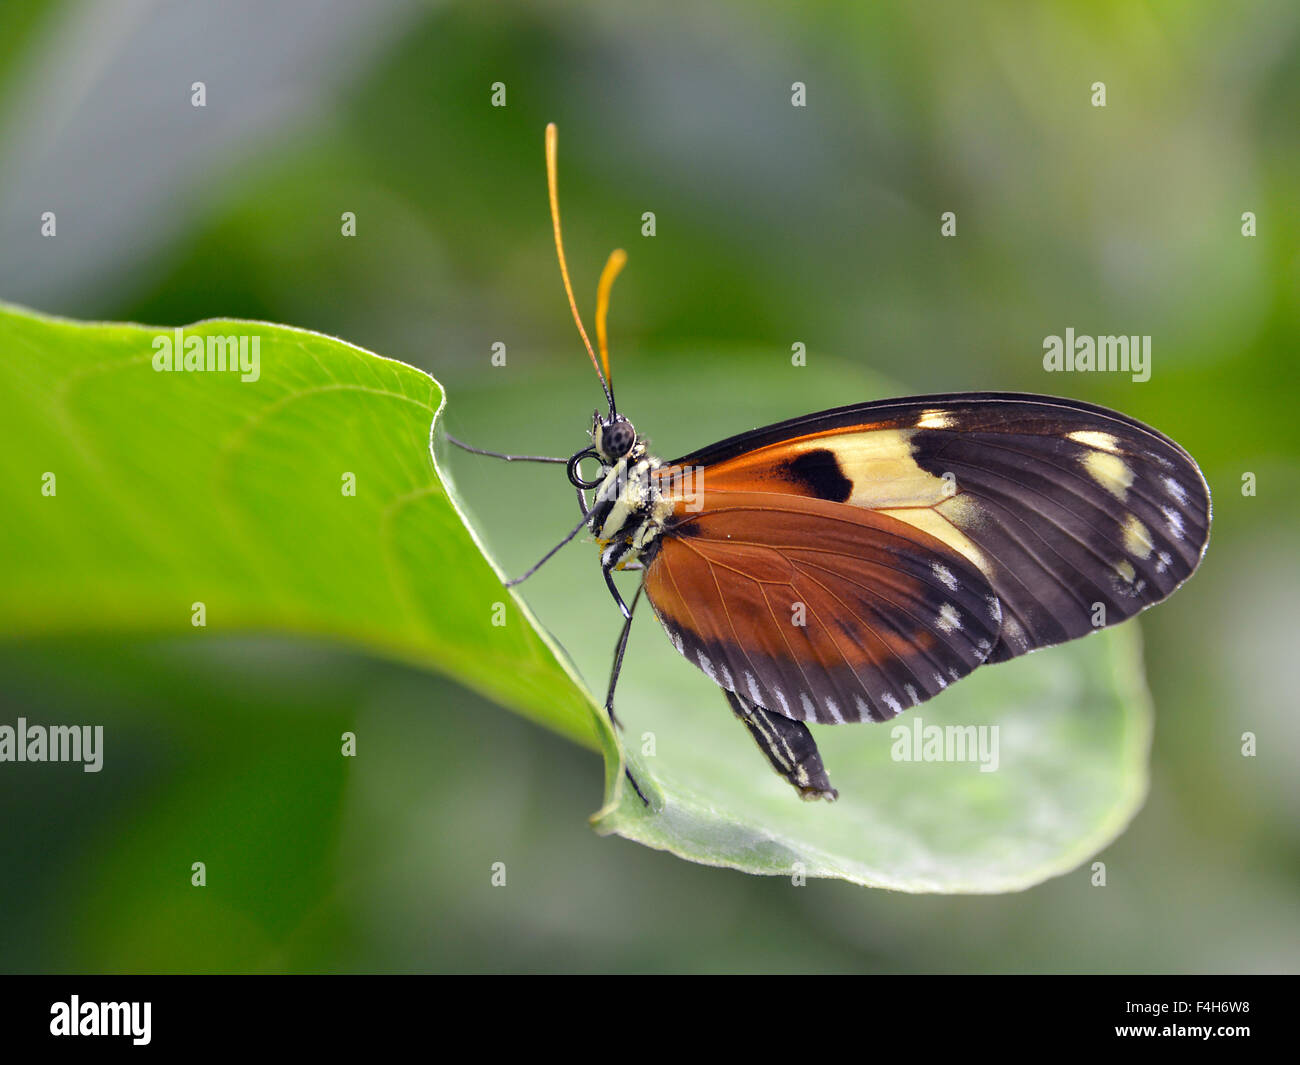 Nymphalidae butterfly on leaf - Stock Image